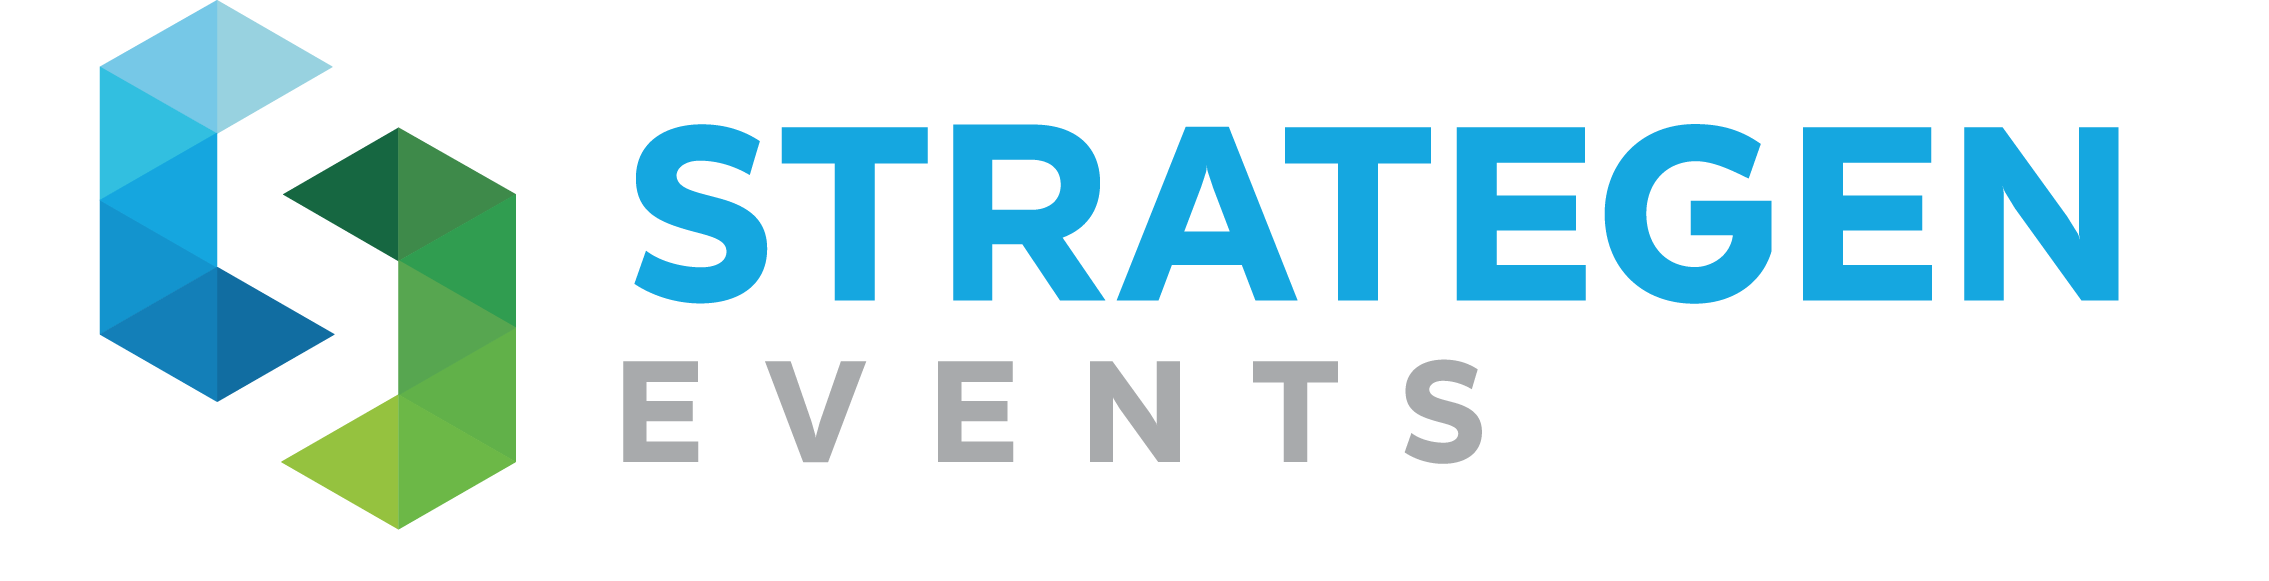 Strategen Events PNG - No Background.png